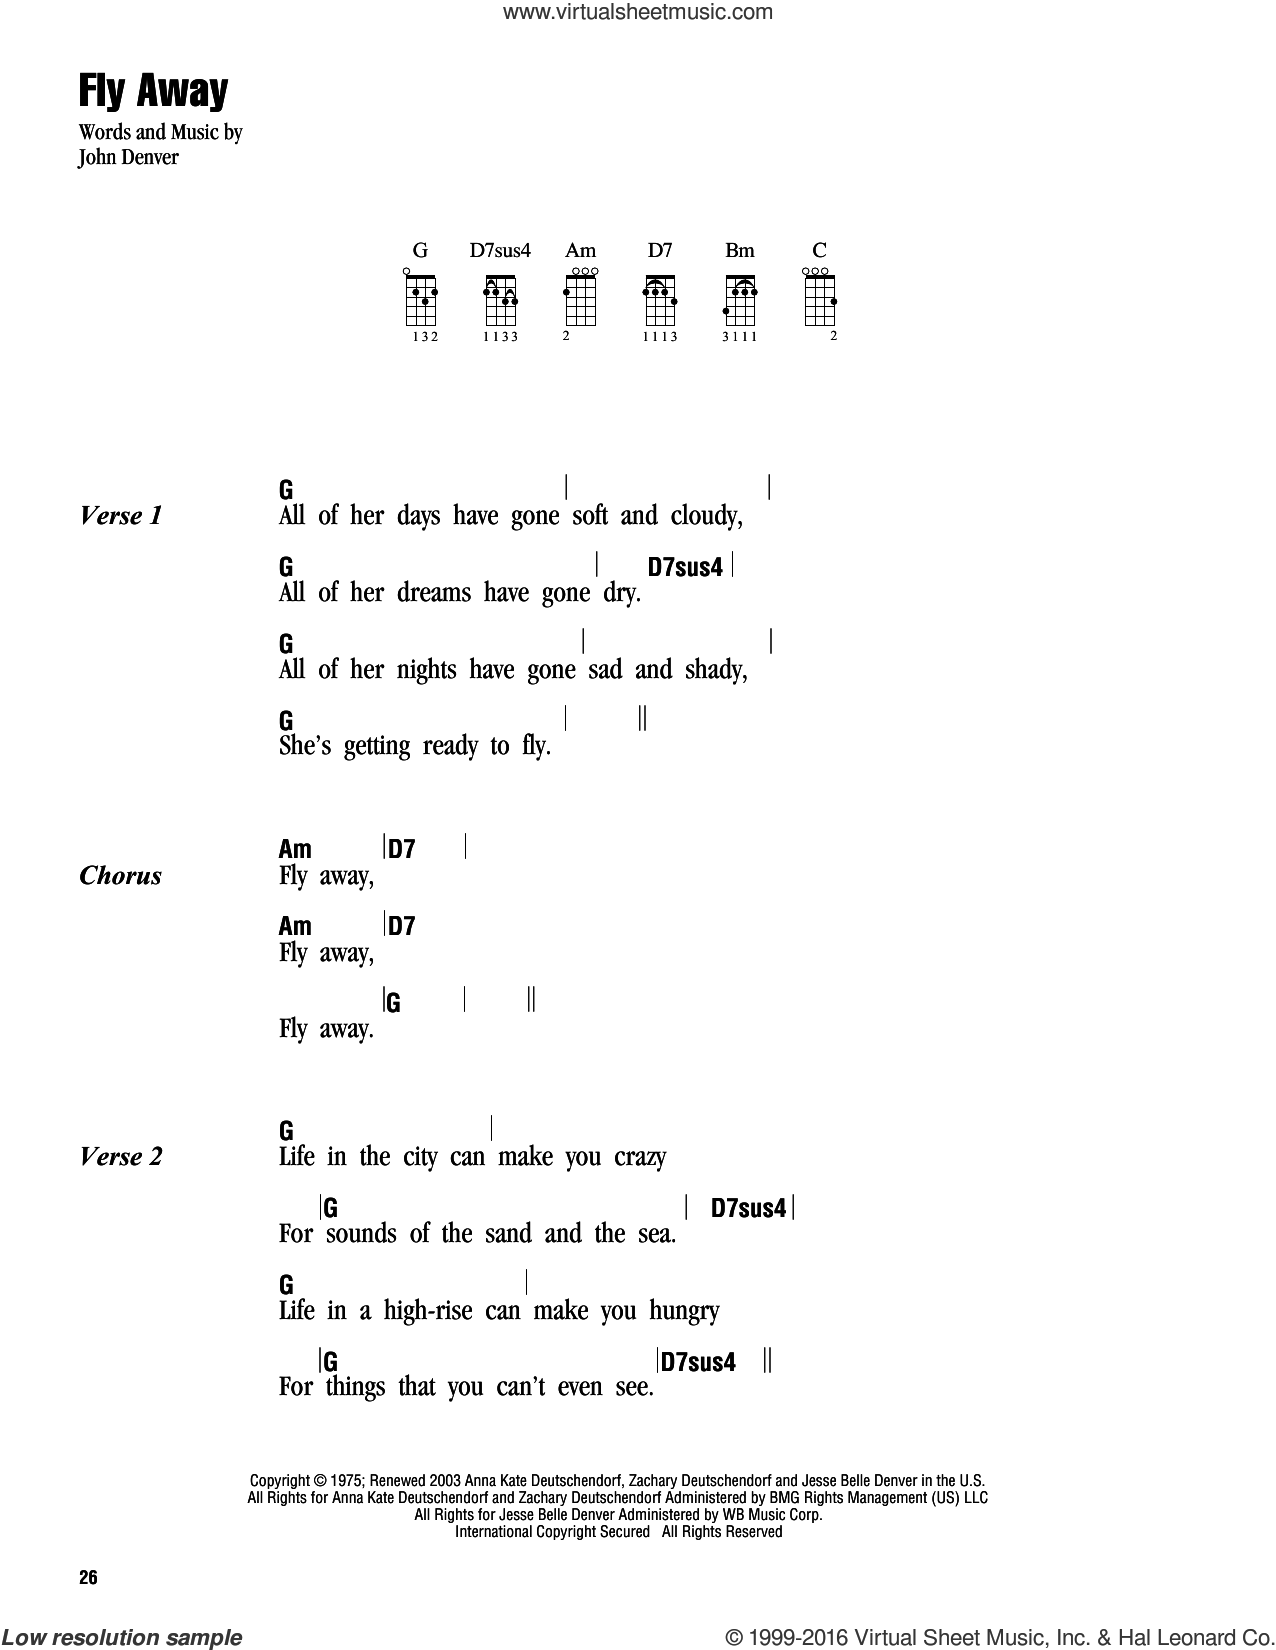 Fly Away sheet music for ukulele (chords) by John Denver, intermediate skill level